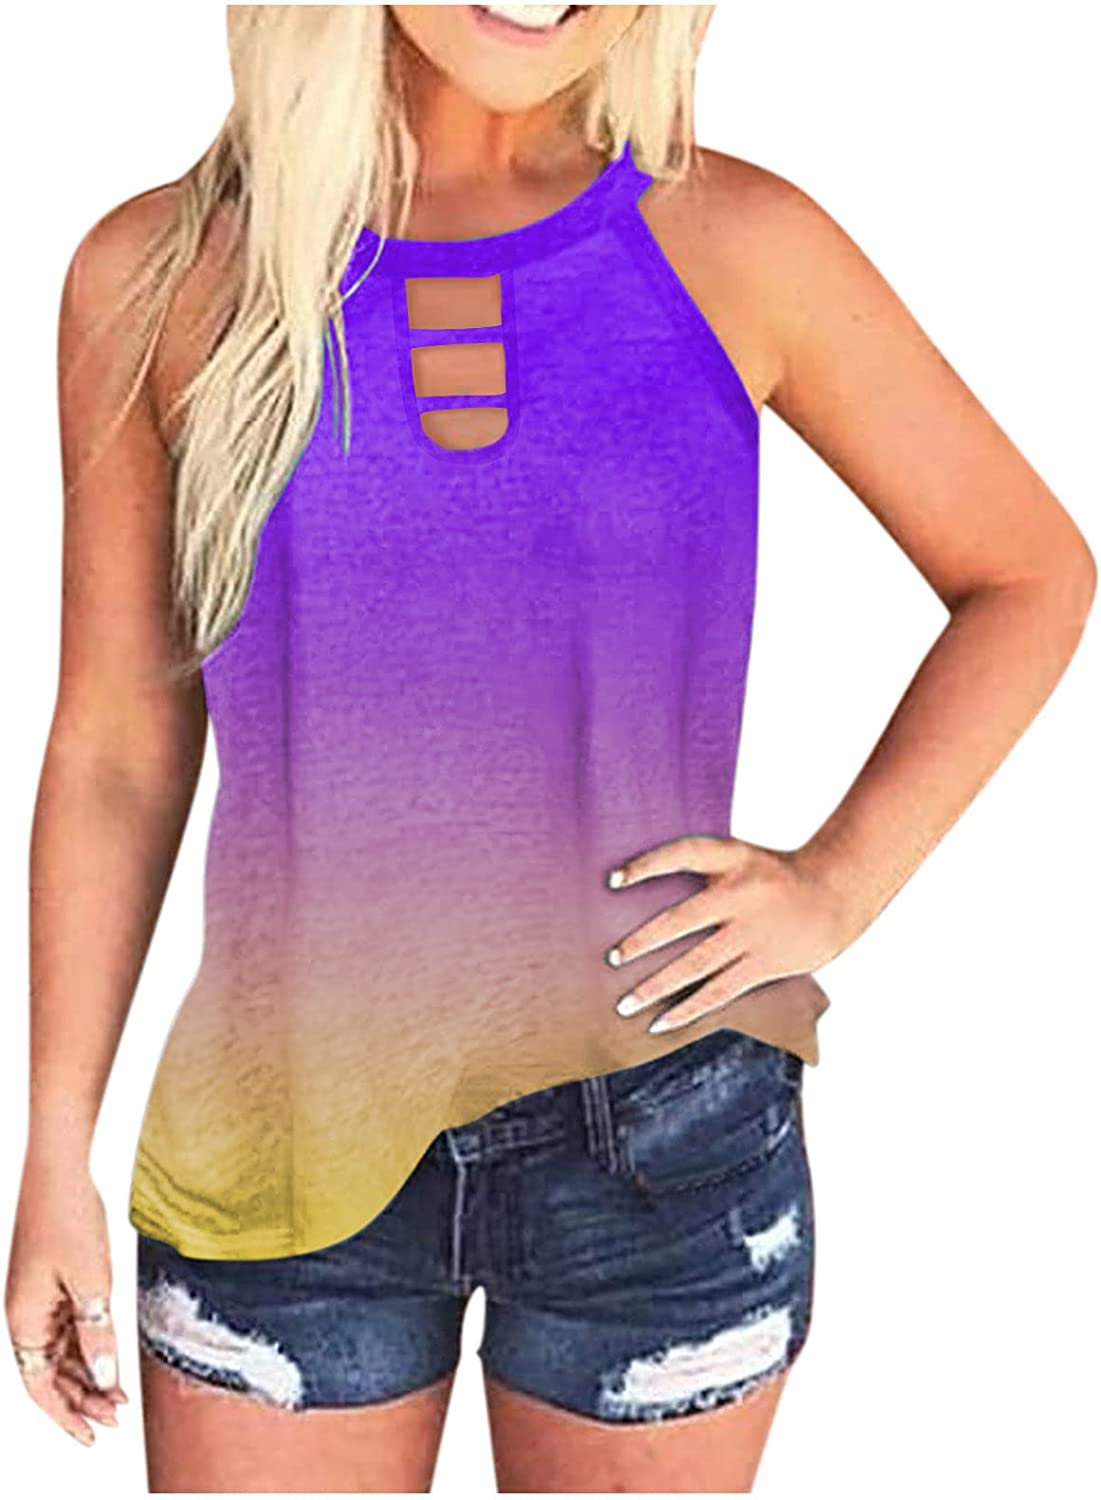 Gerichy Tank Tops for Women Casual, Womens Summer Loose Fit Sleeveless Fashion Tank Tees Shirts Blouses Vest Tunic Tops